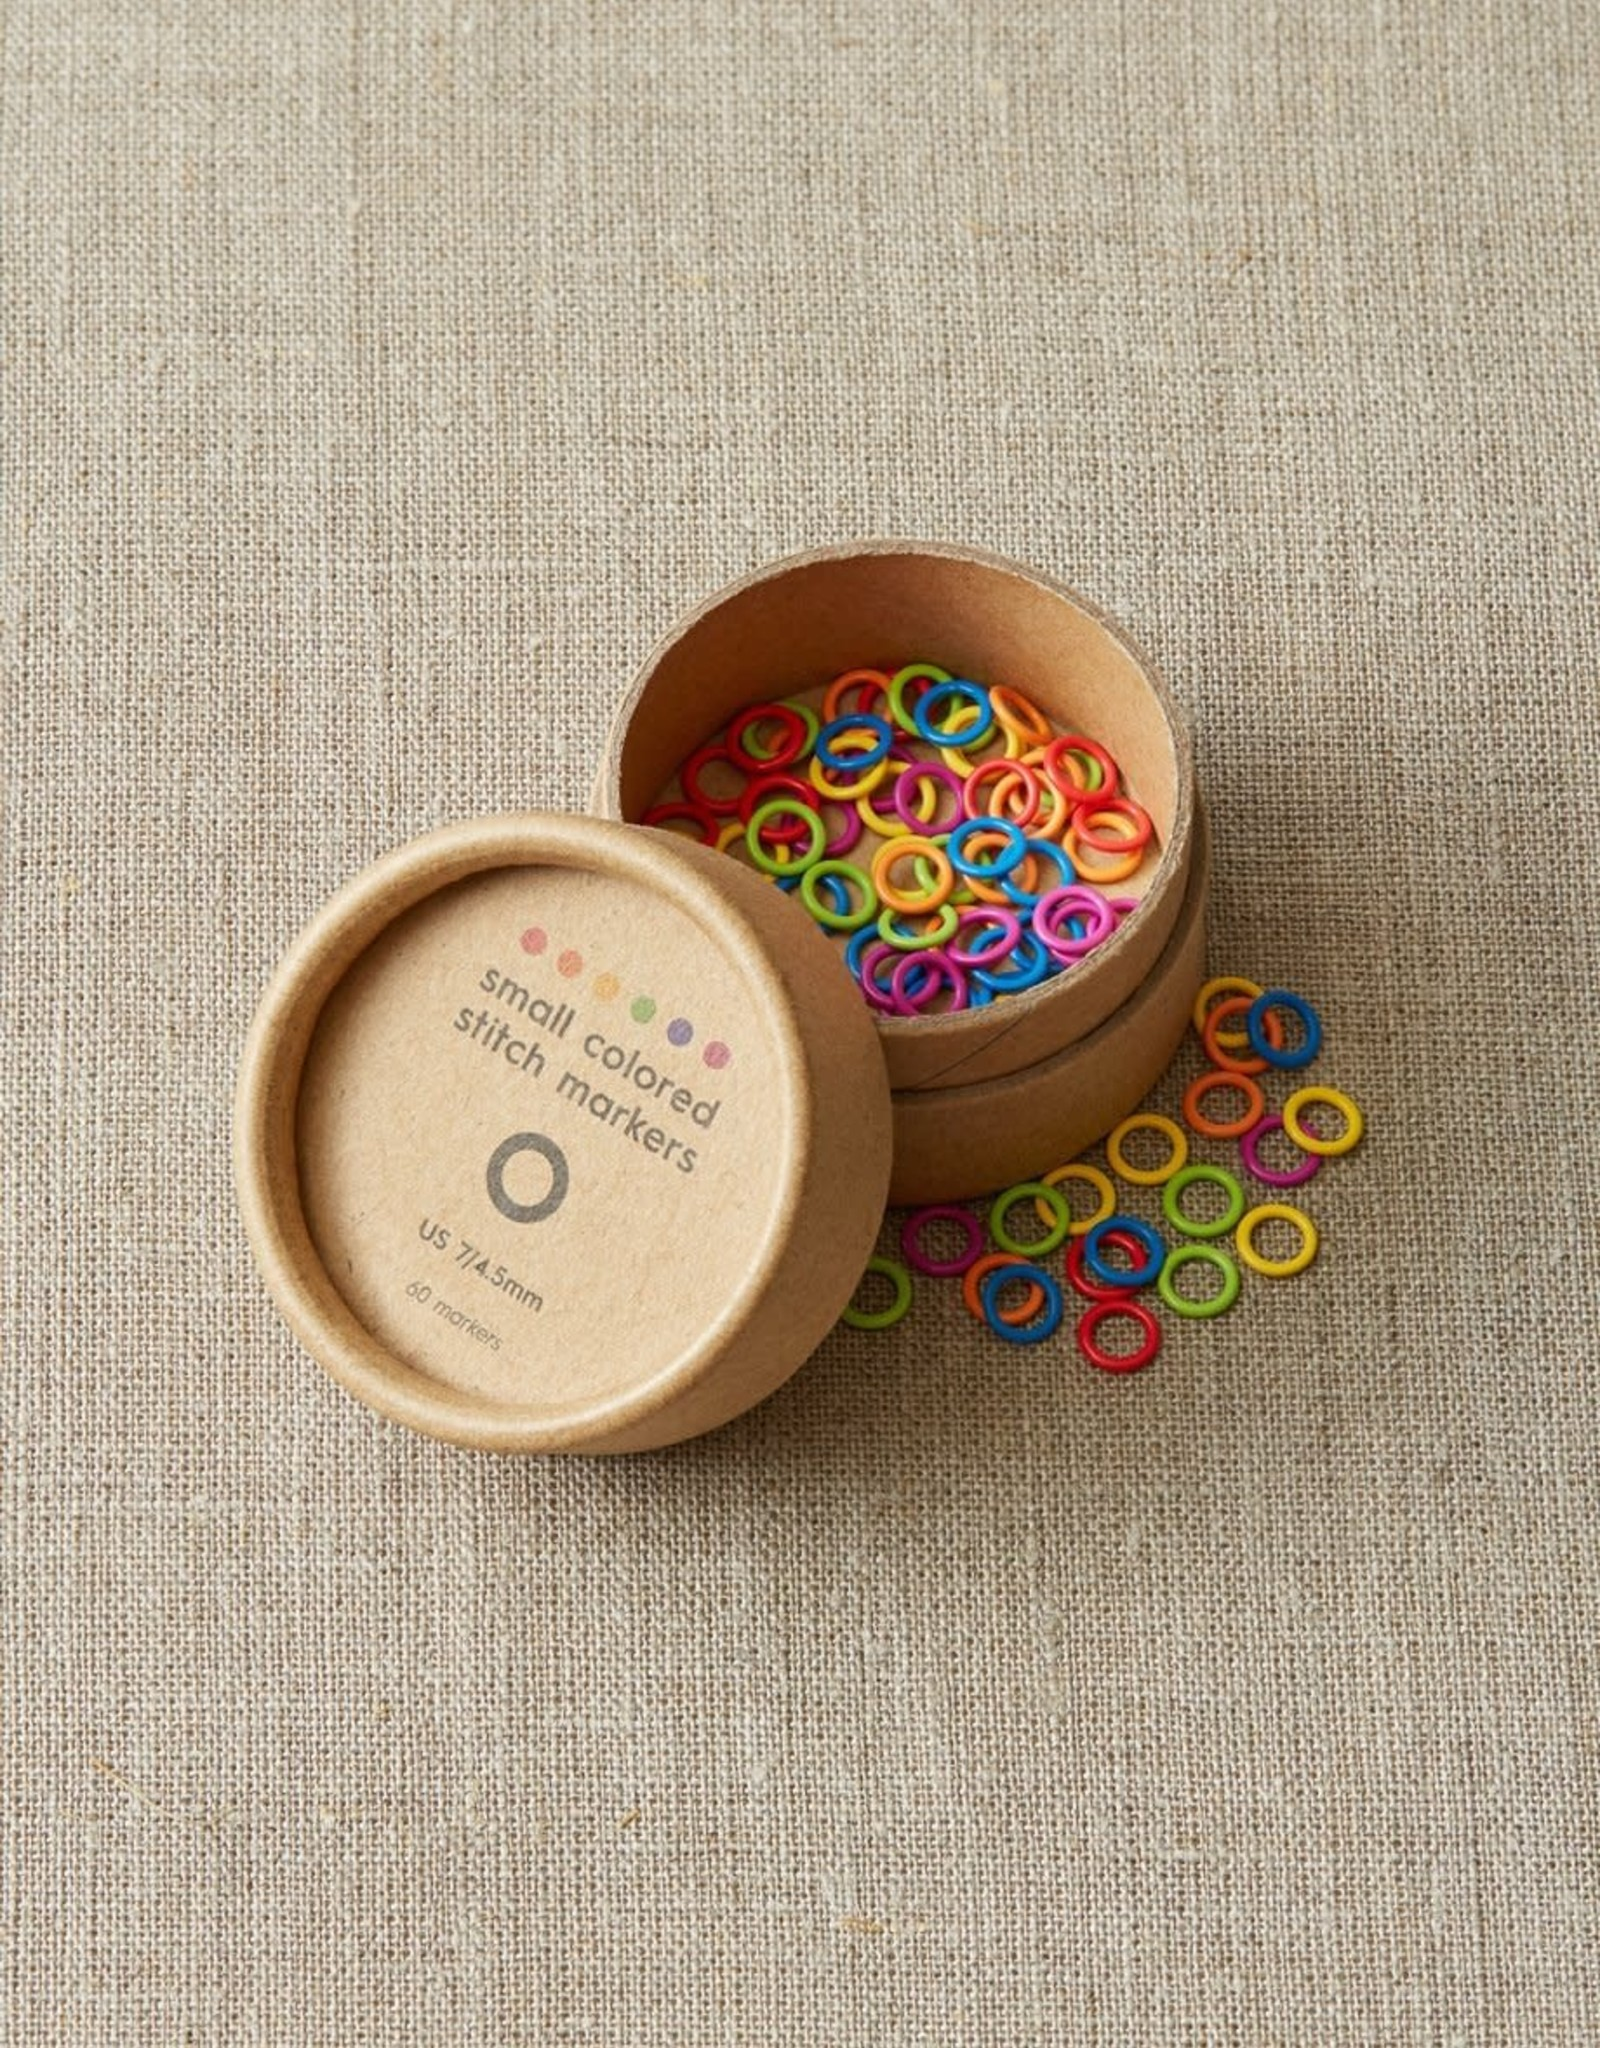 Cocoknits Cocoknits Colorful Ring Stitch Markers Mini